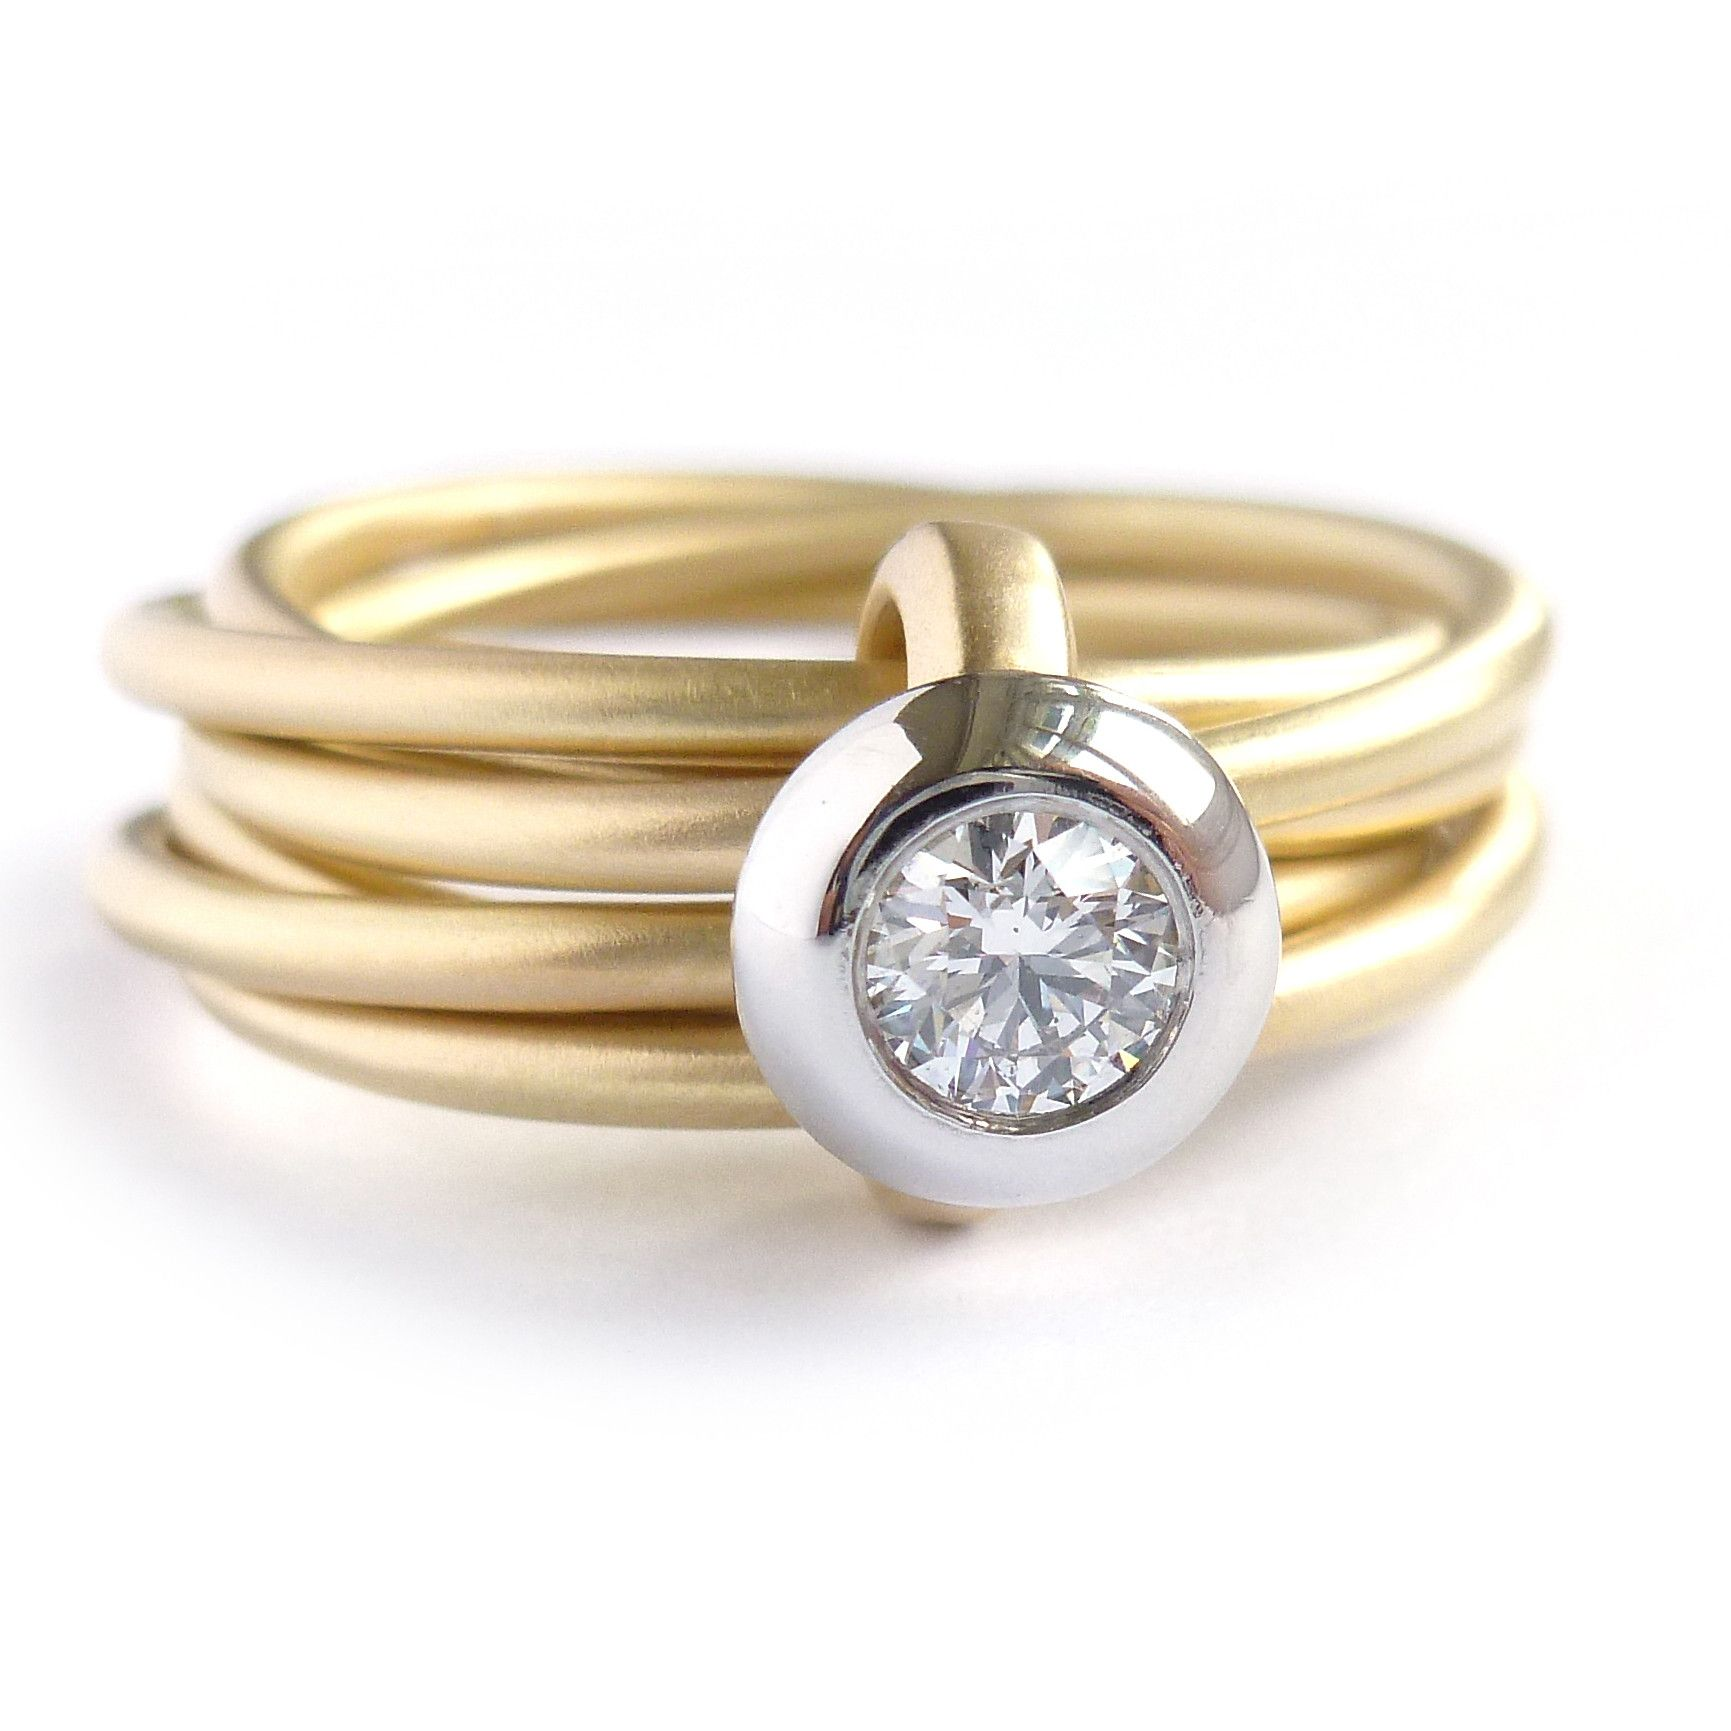 designed wide mirri gold contemporary super damer by crown rings ring bespoke